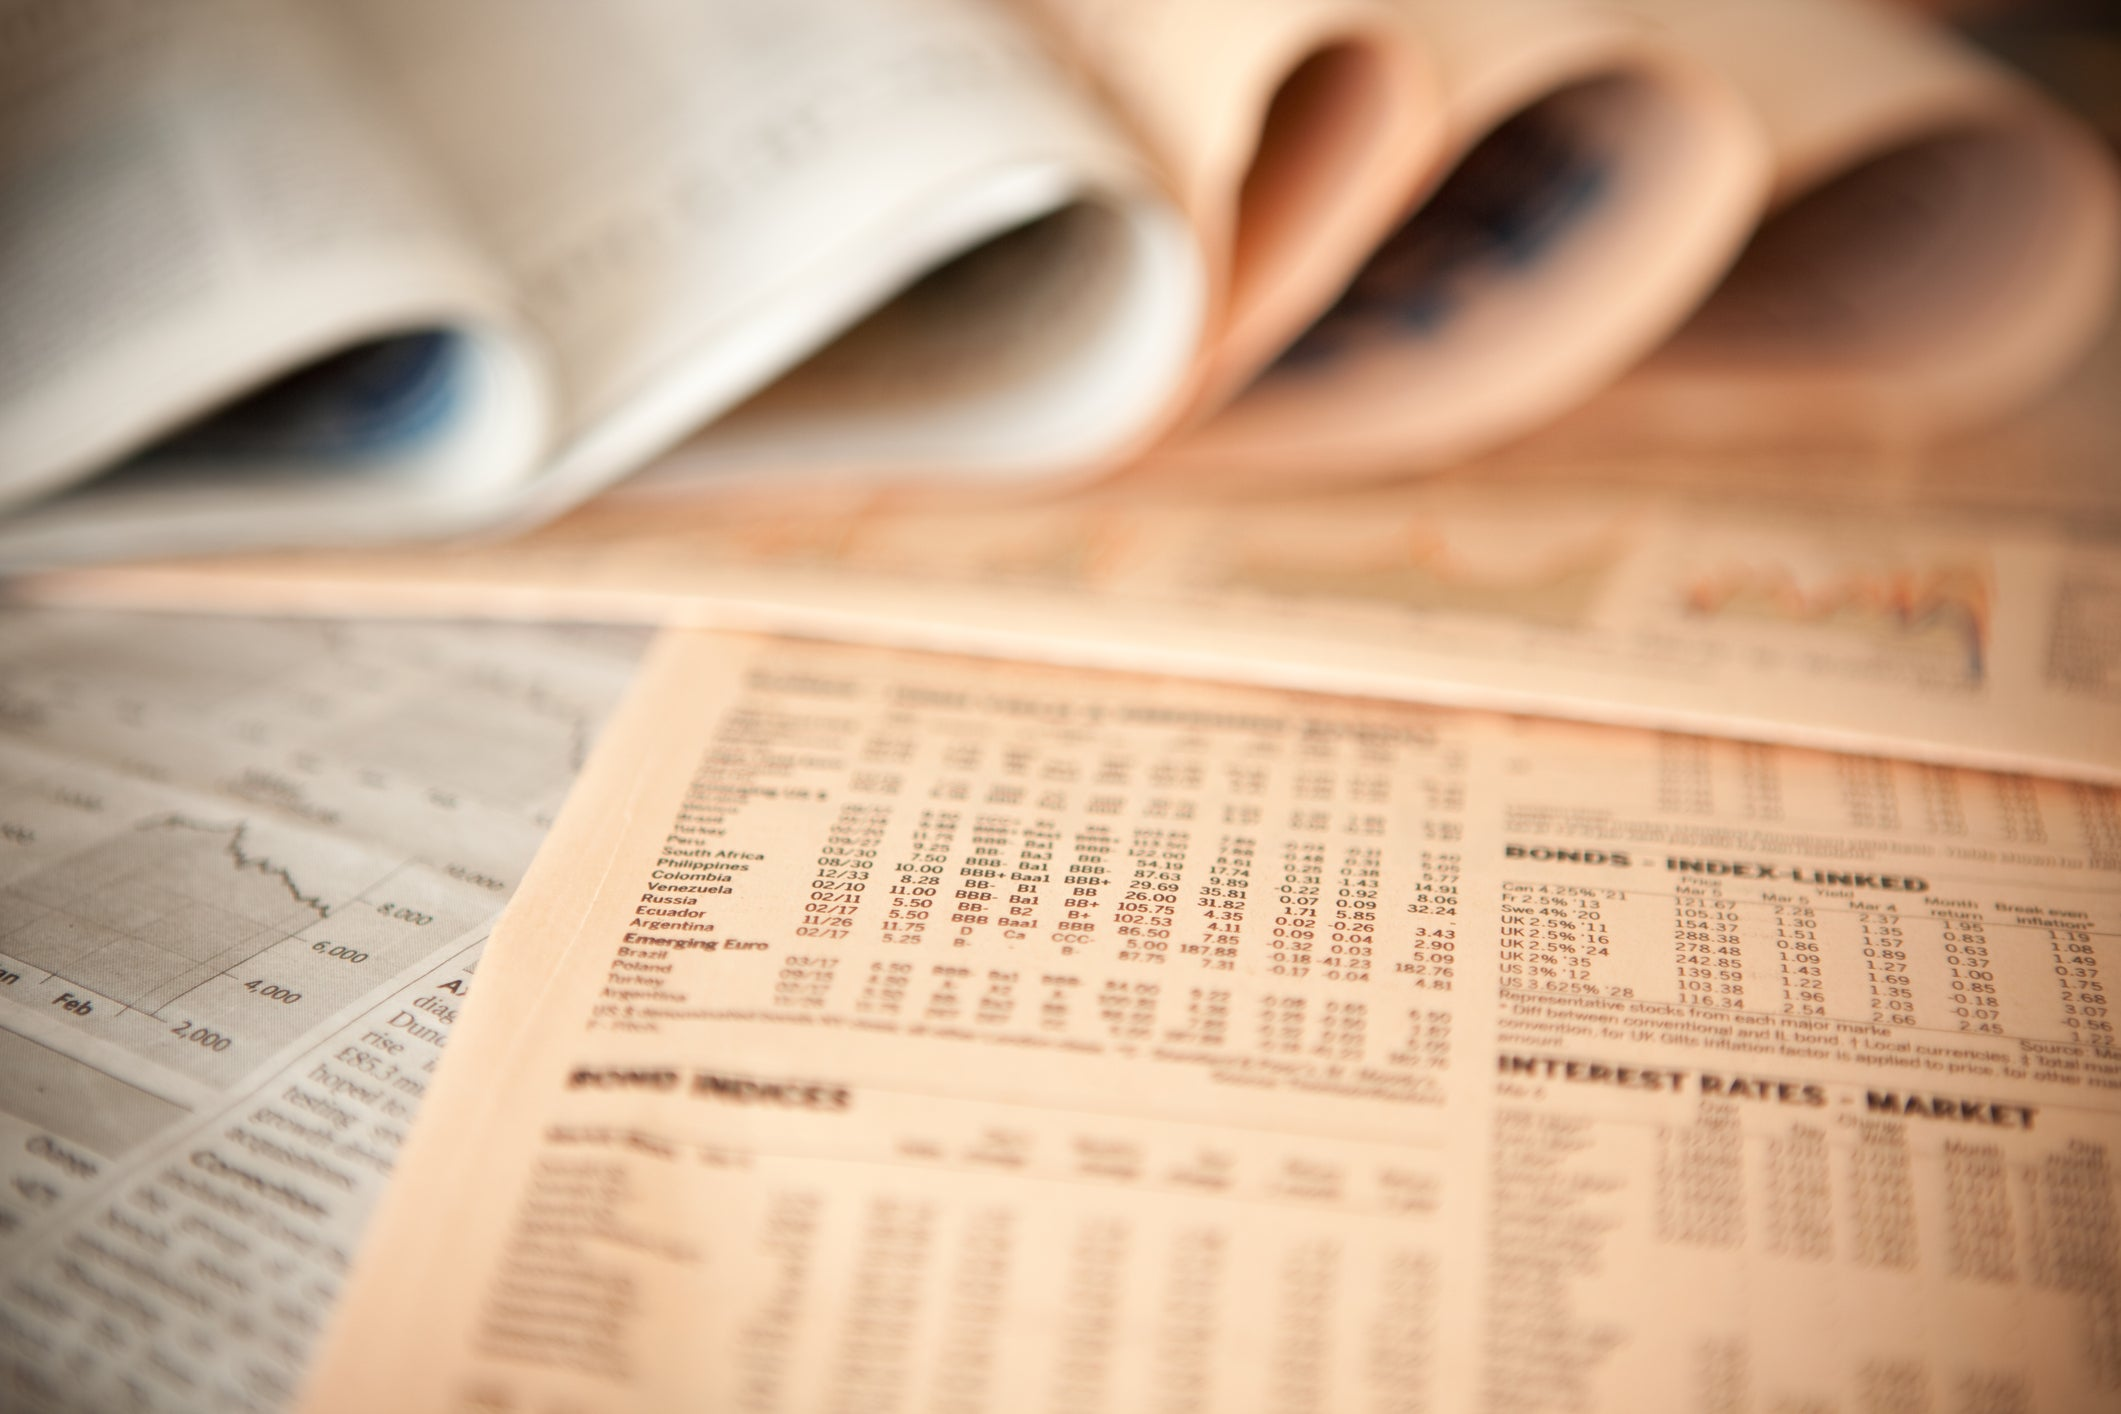 The stock pages of a newspaper.